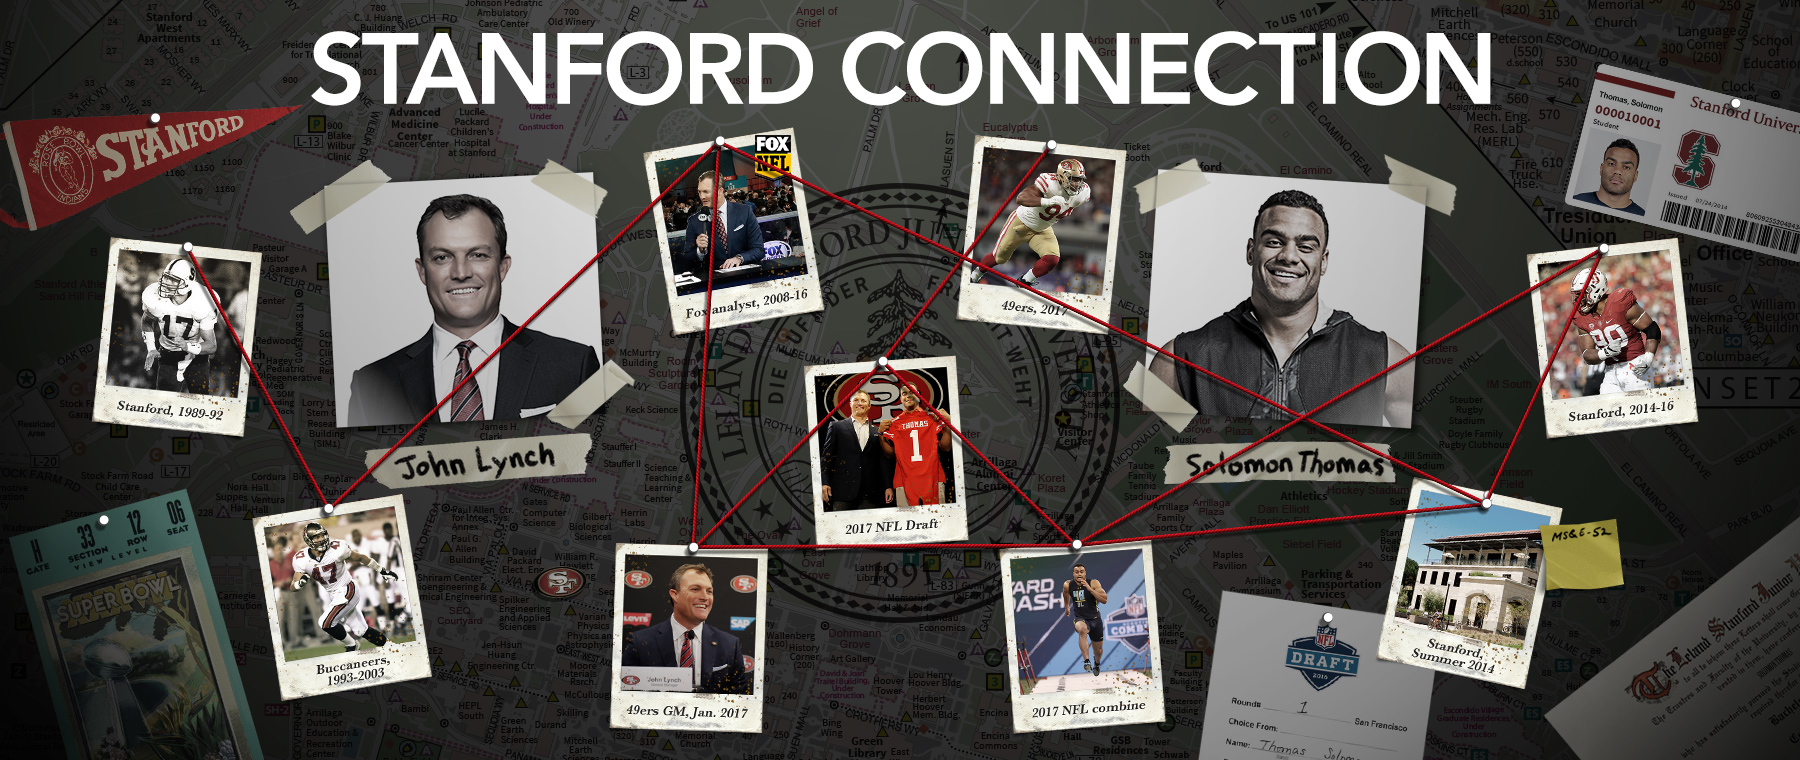 Stanford Connection